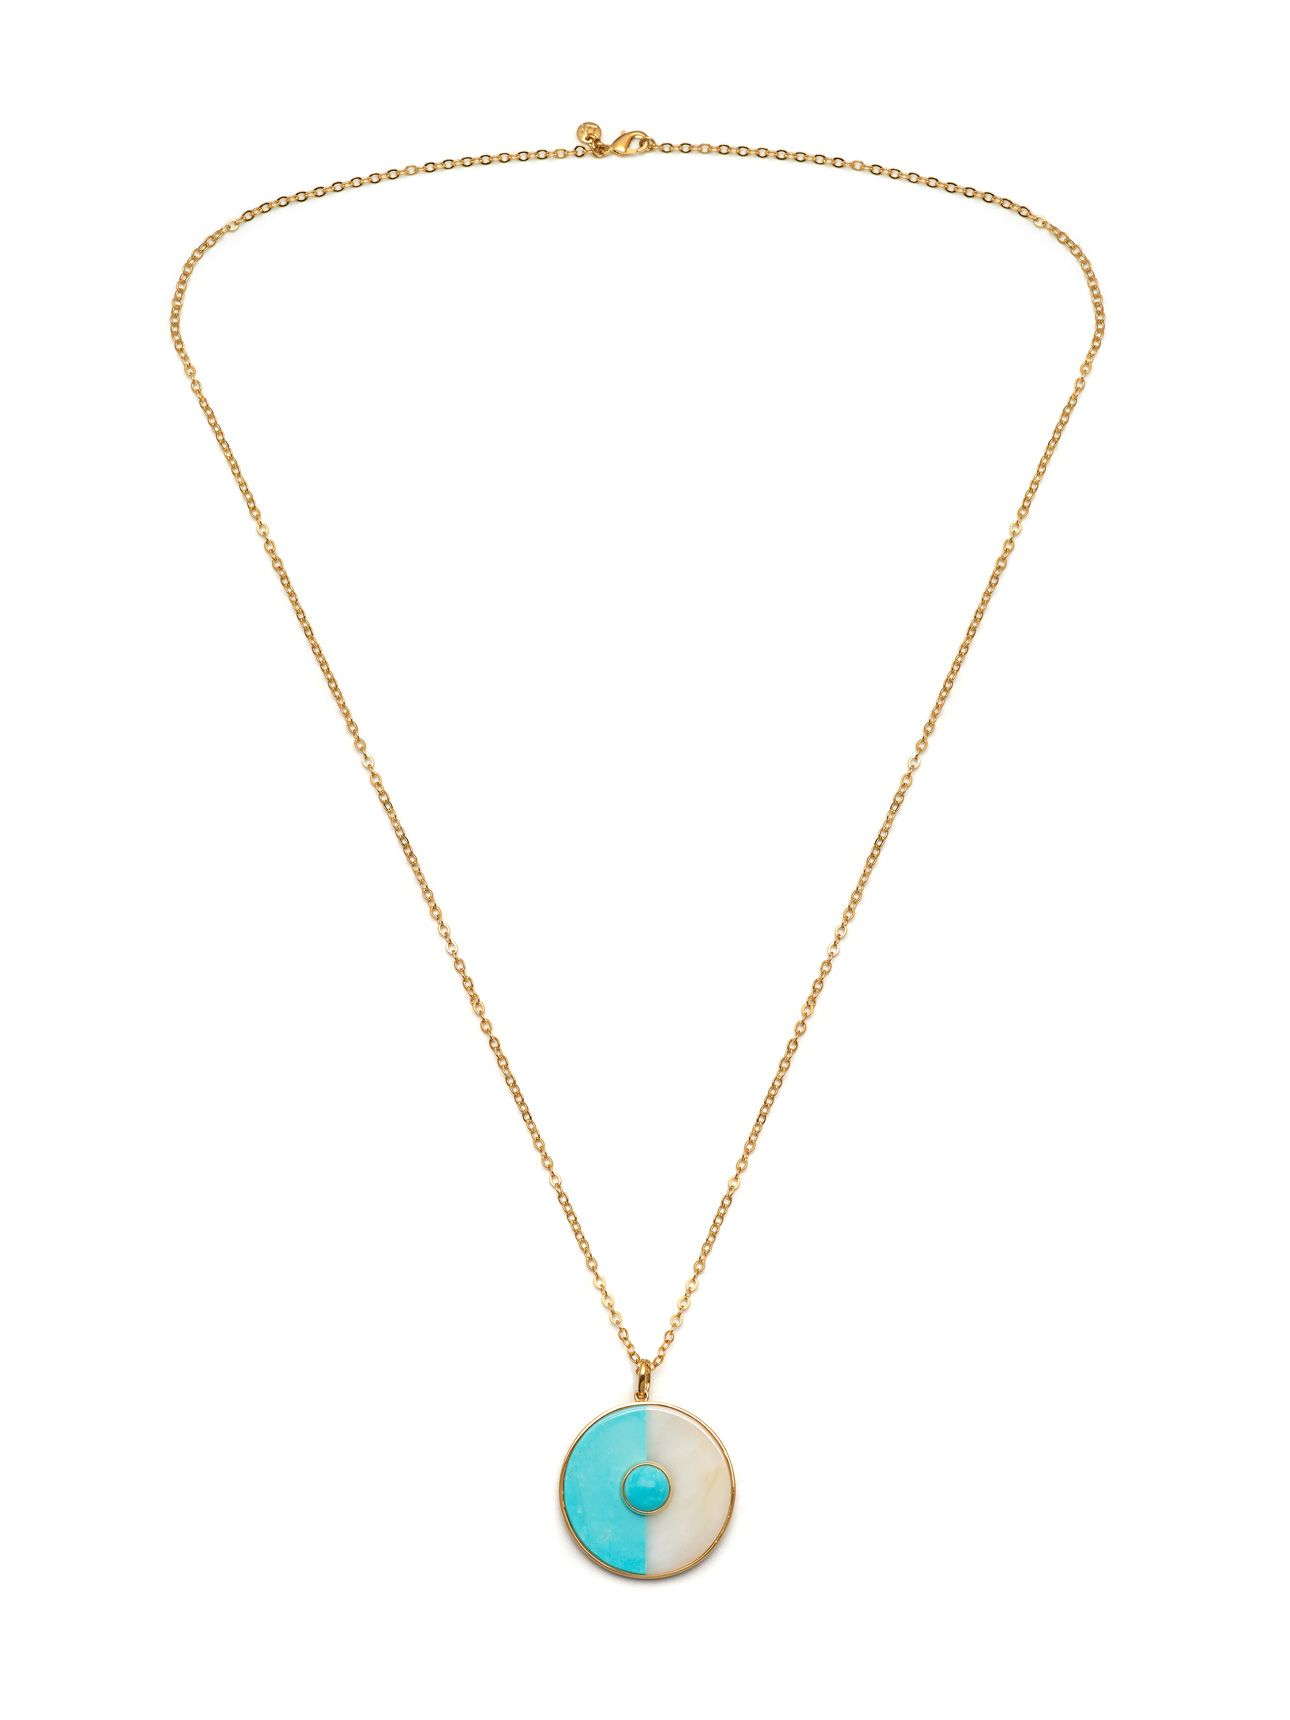 Fira Necklace